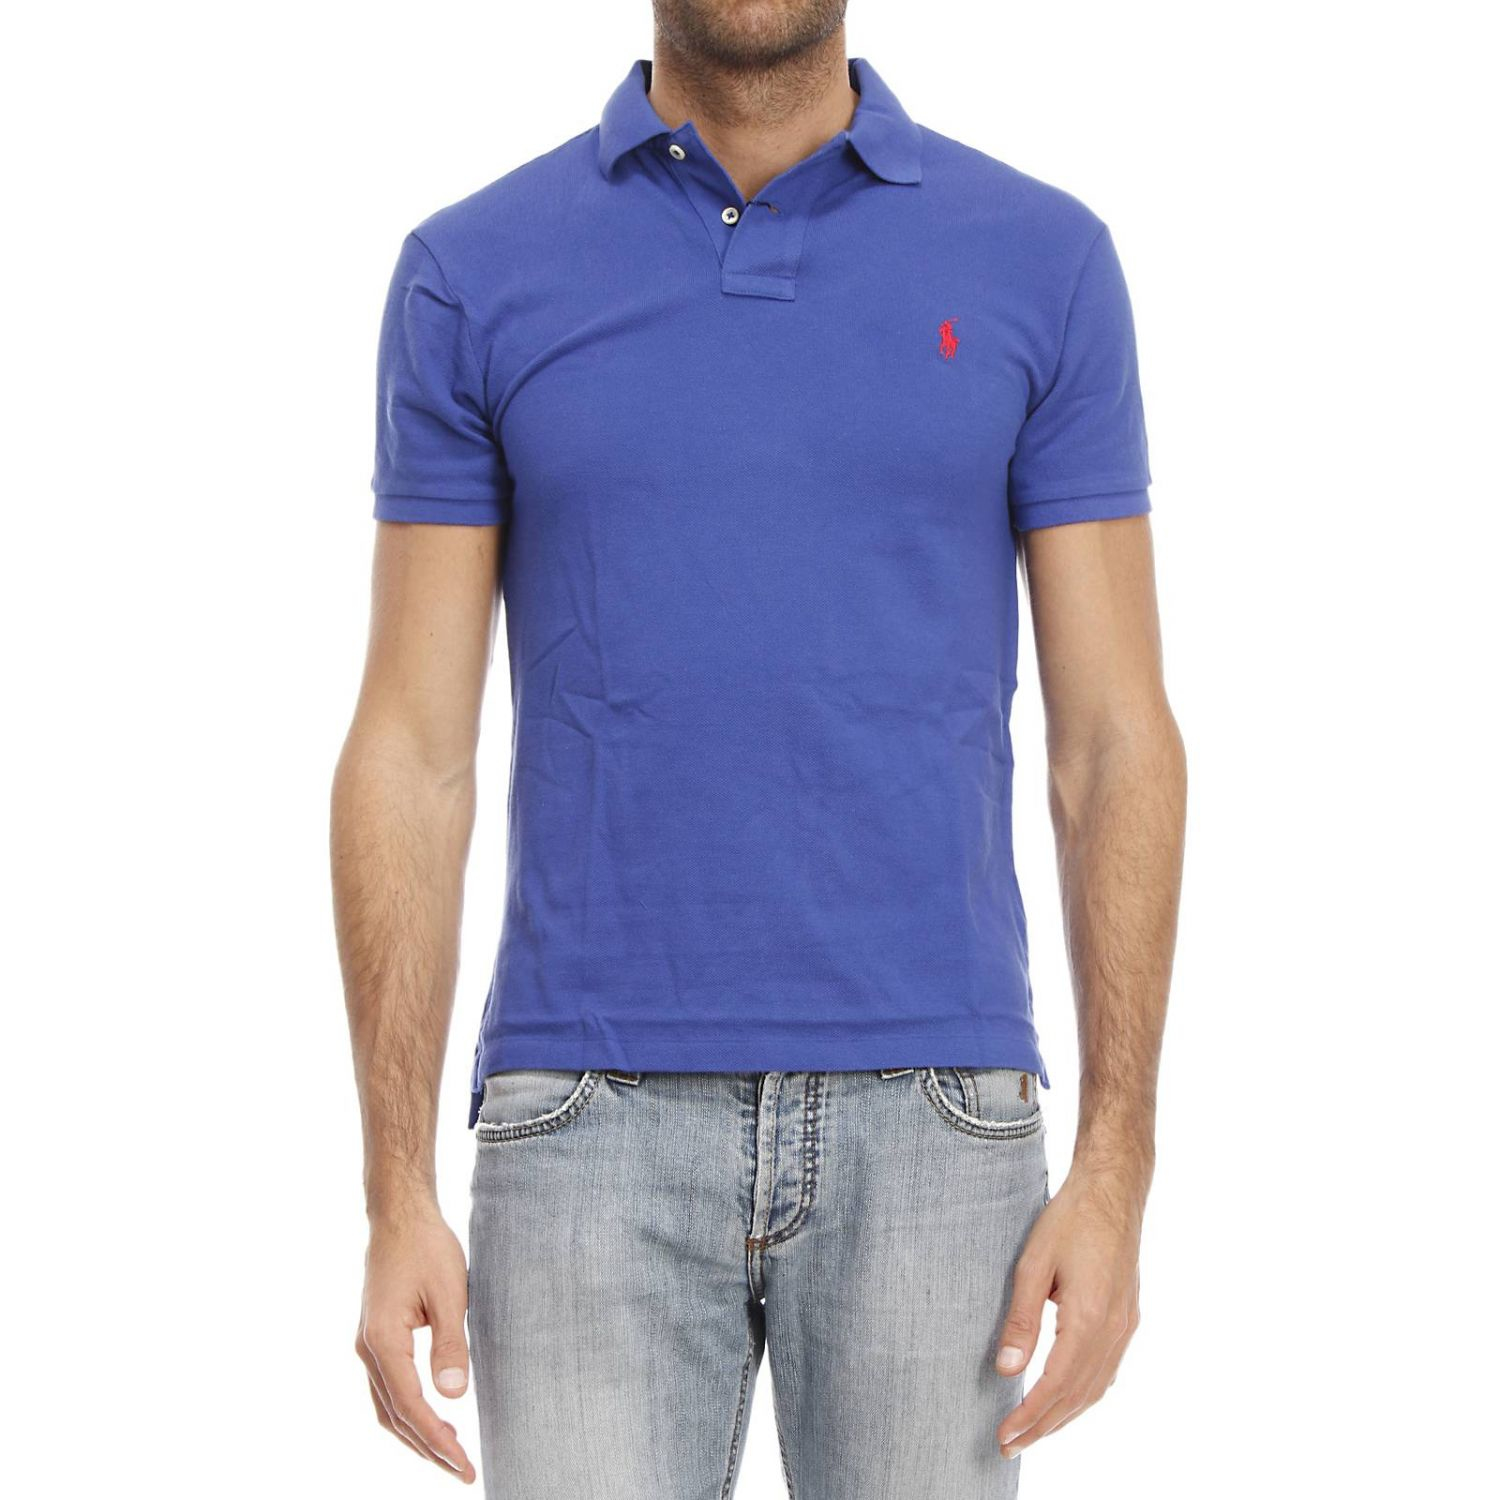 polo ralph lauren t shirt in blue for men lyst. Black Bedroom Furniture Sets. Home Design Ideas